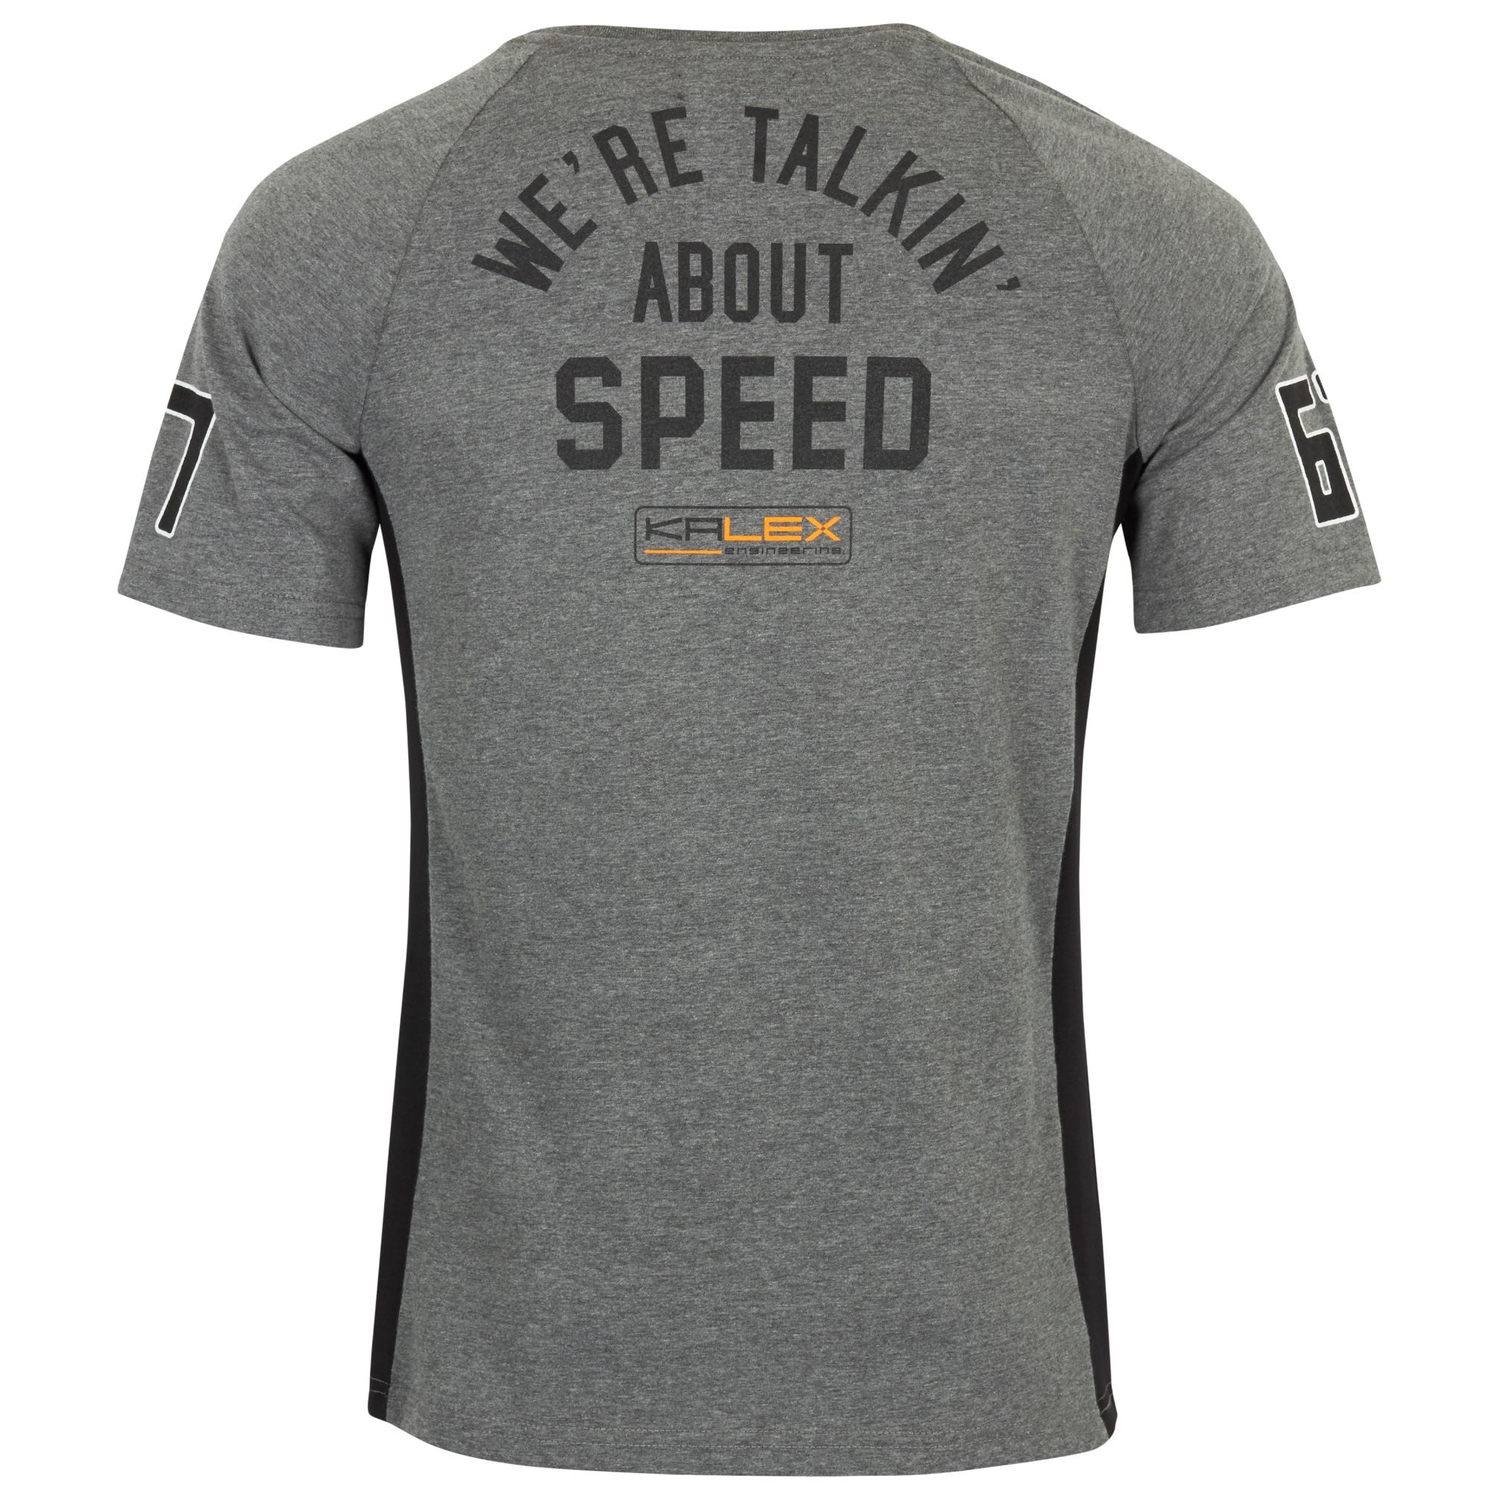 T-SHIRT SPEED DRUCK GRAU XL